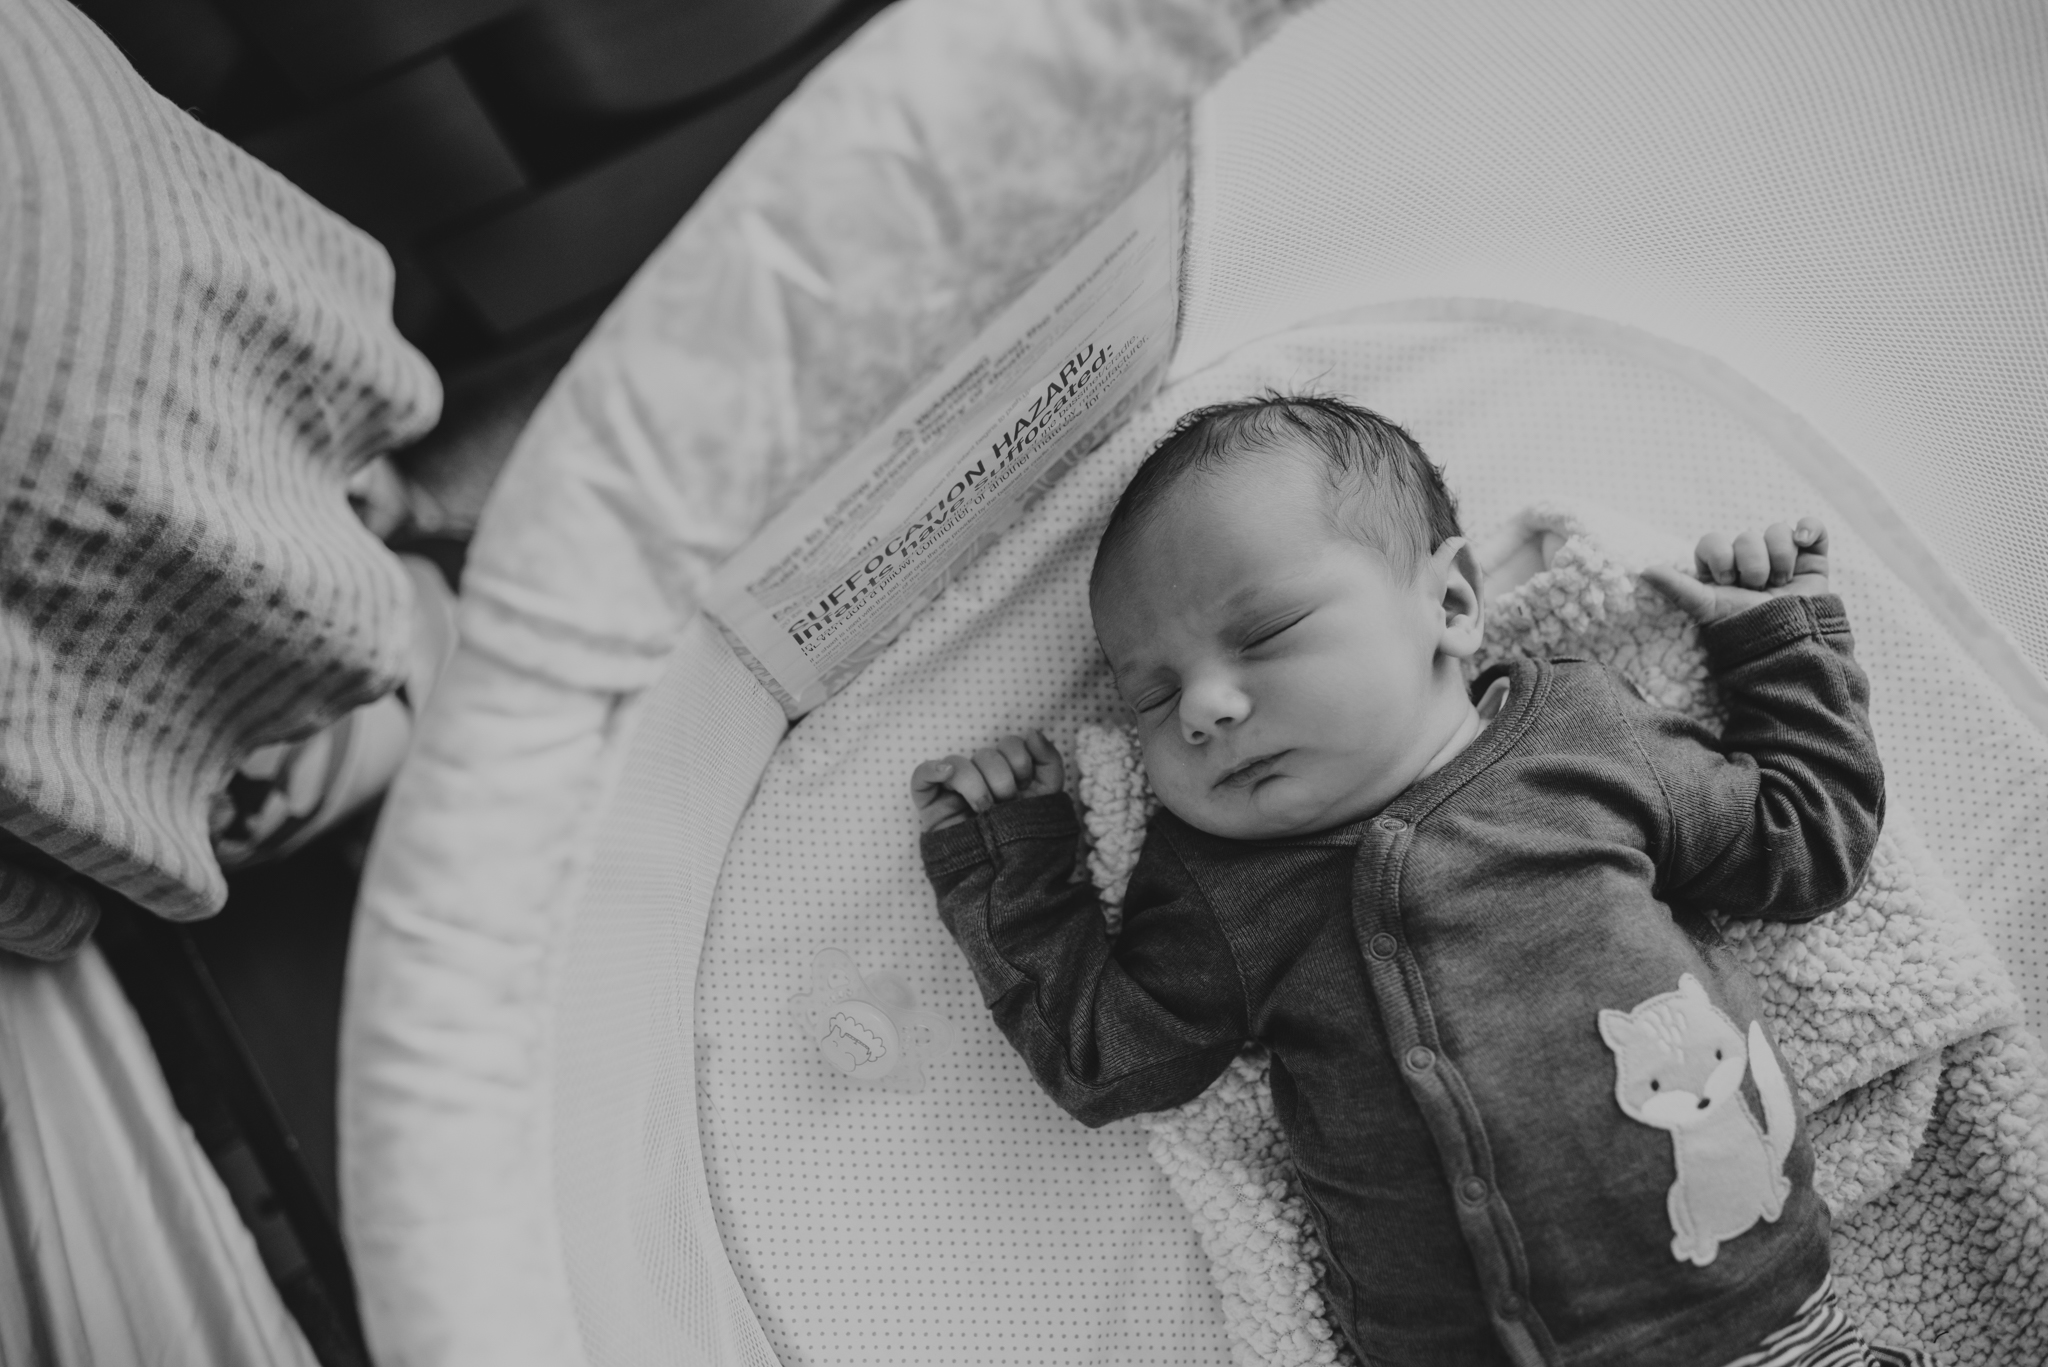 The new baby lays in a bassinet in his parents' room in Wake Forest, a black and white image by Rose Trail Images.